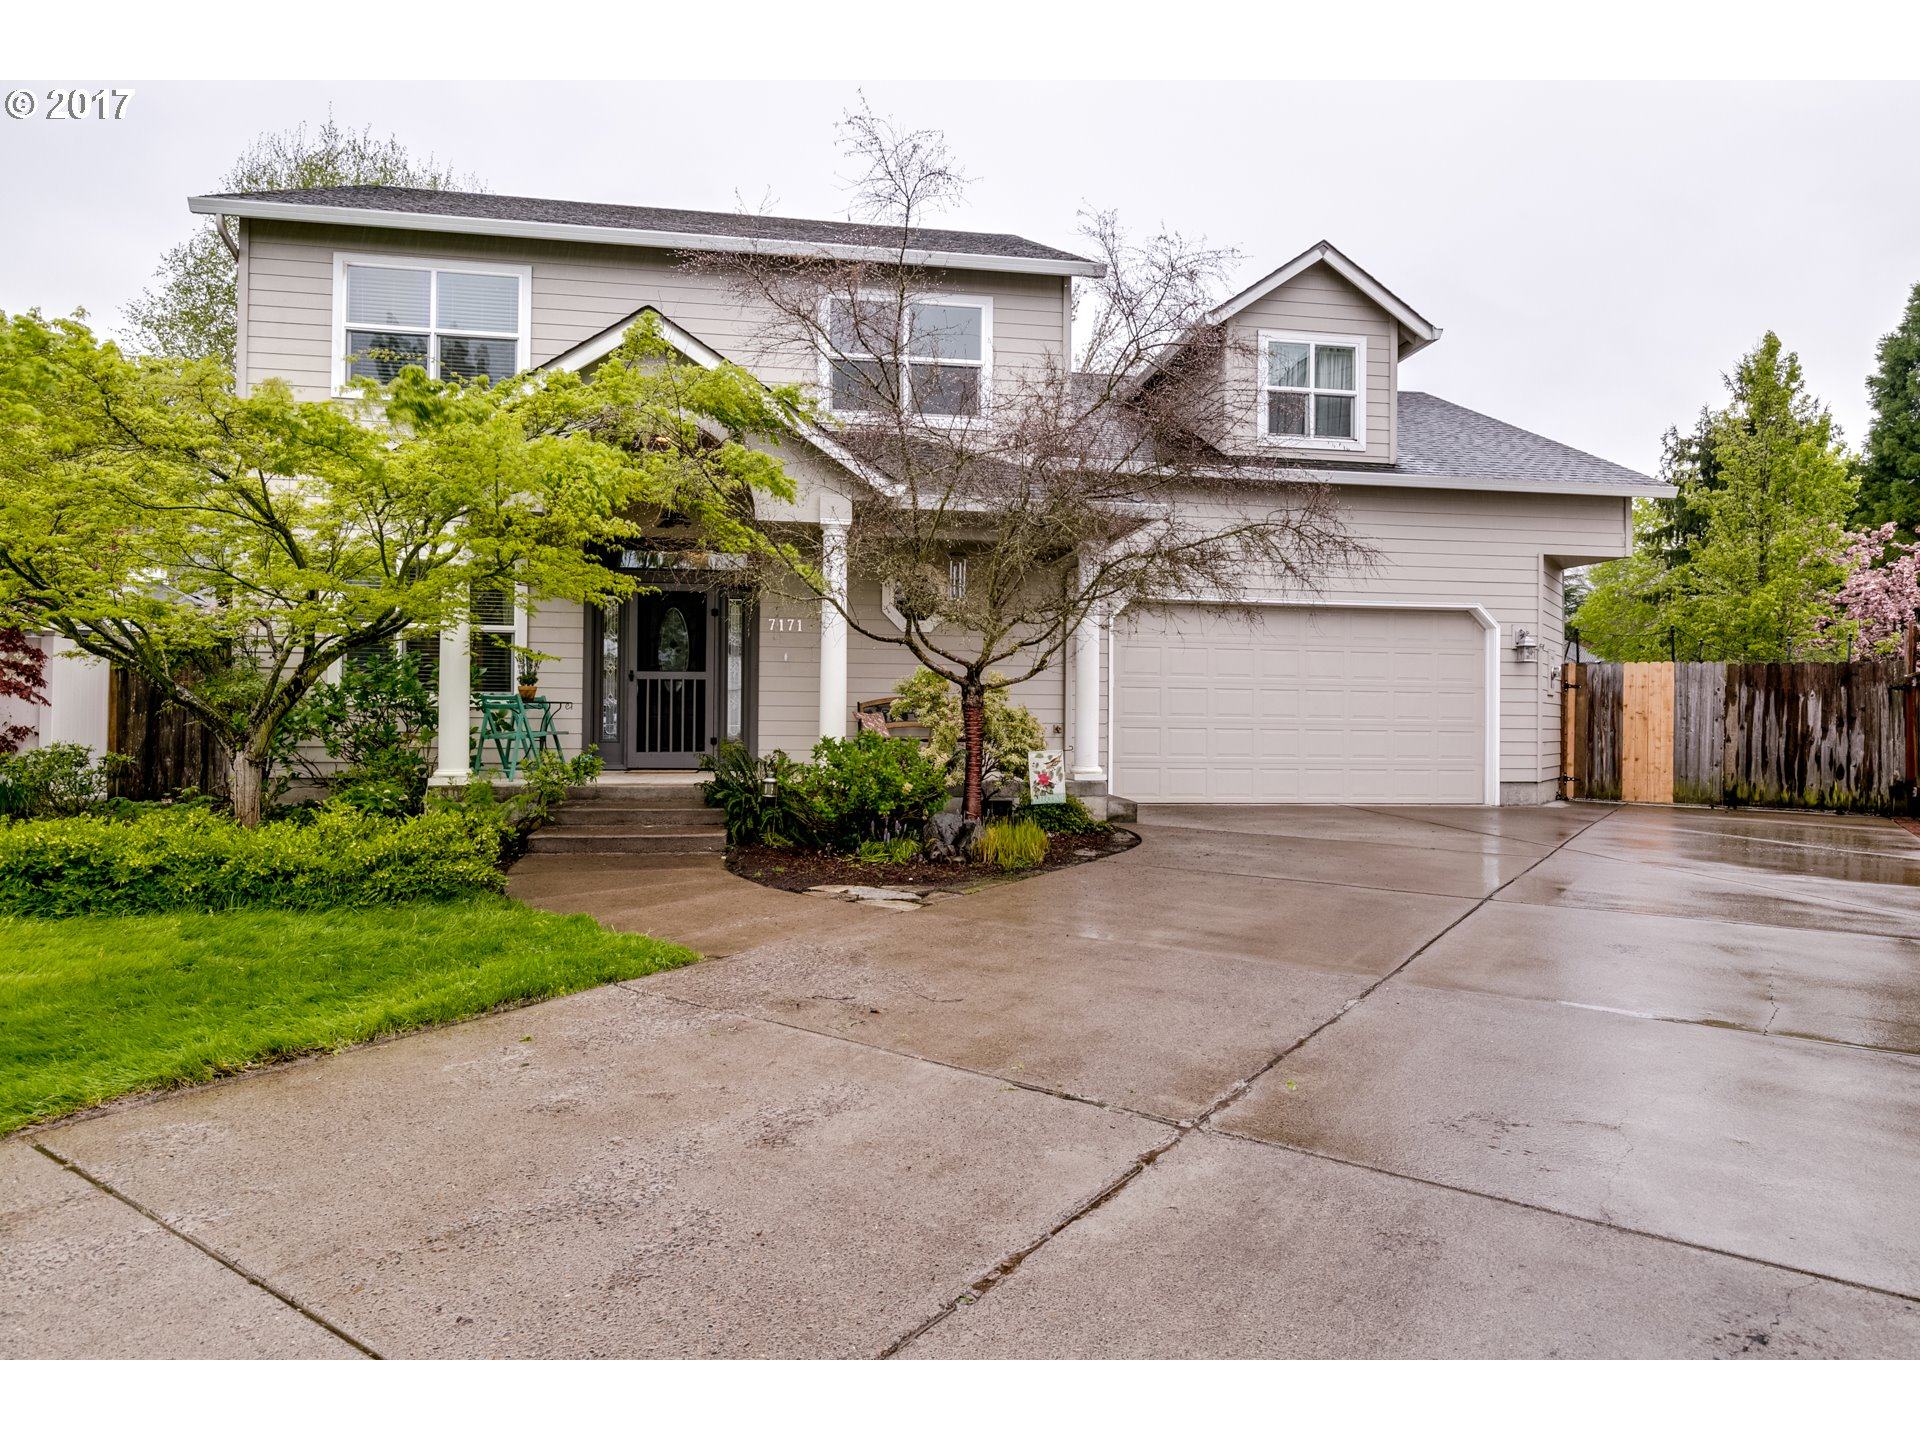 7171 F PL, Springfield, OR 97478